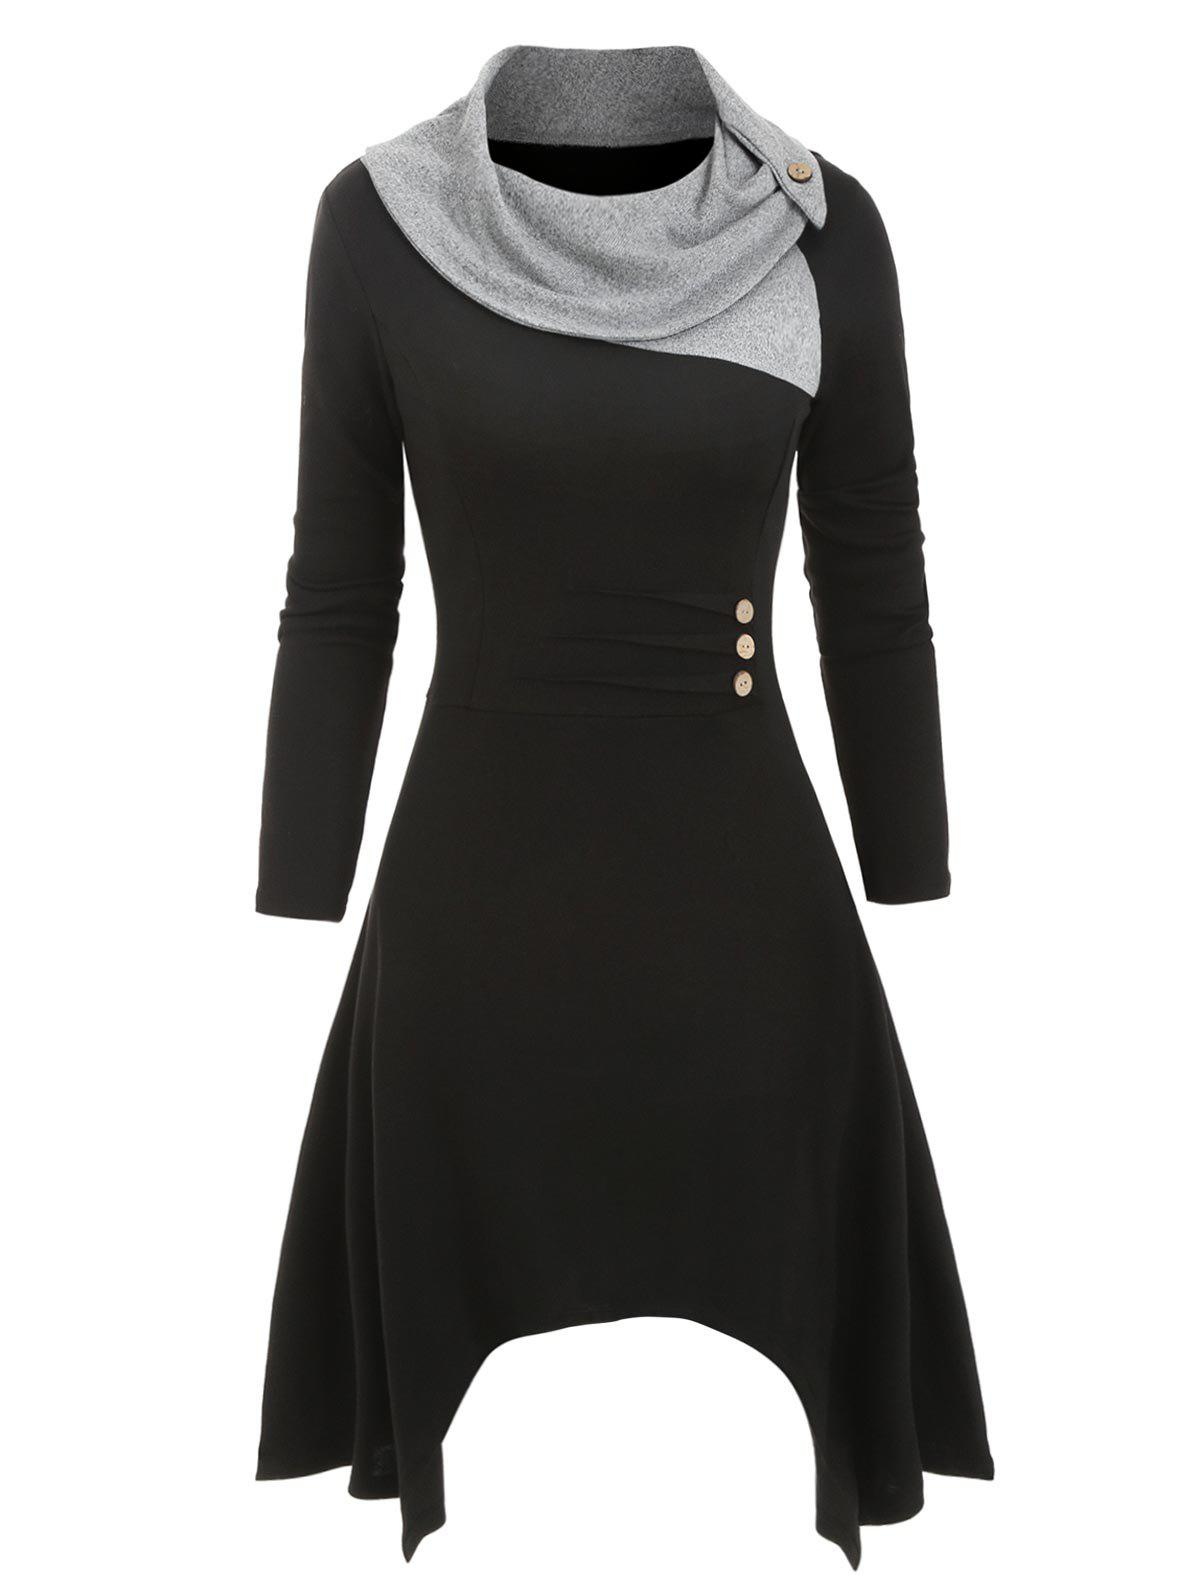 Cowl Neck Button Embellished Asymmetrical Knitted Dress - BLACK 3XL